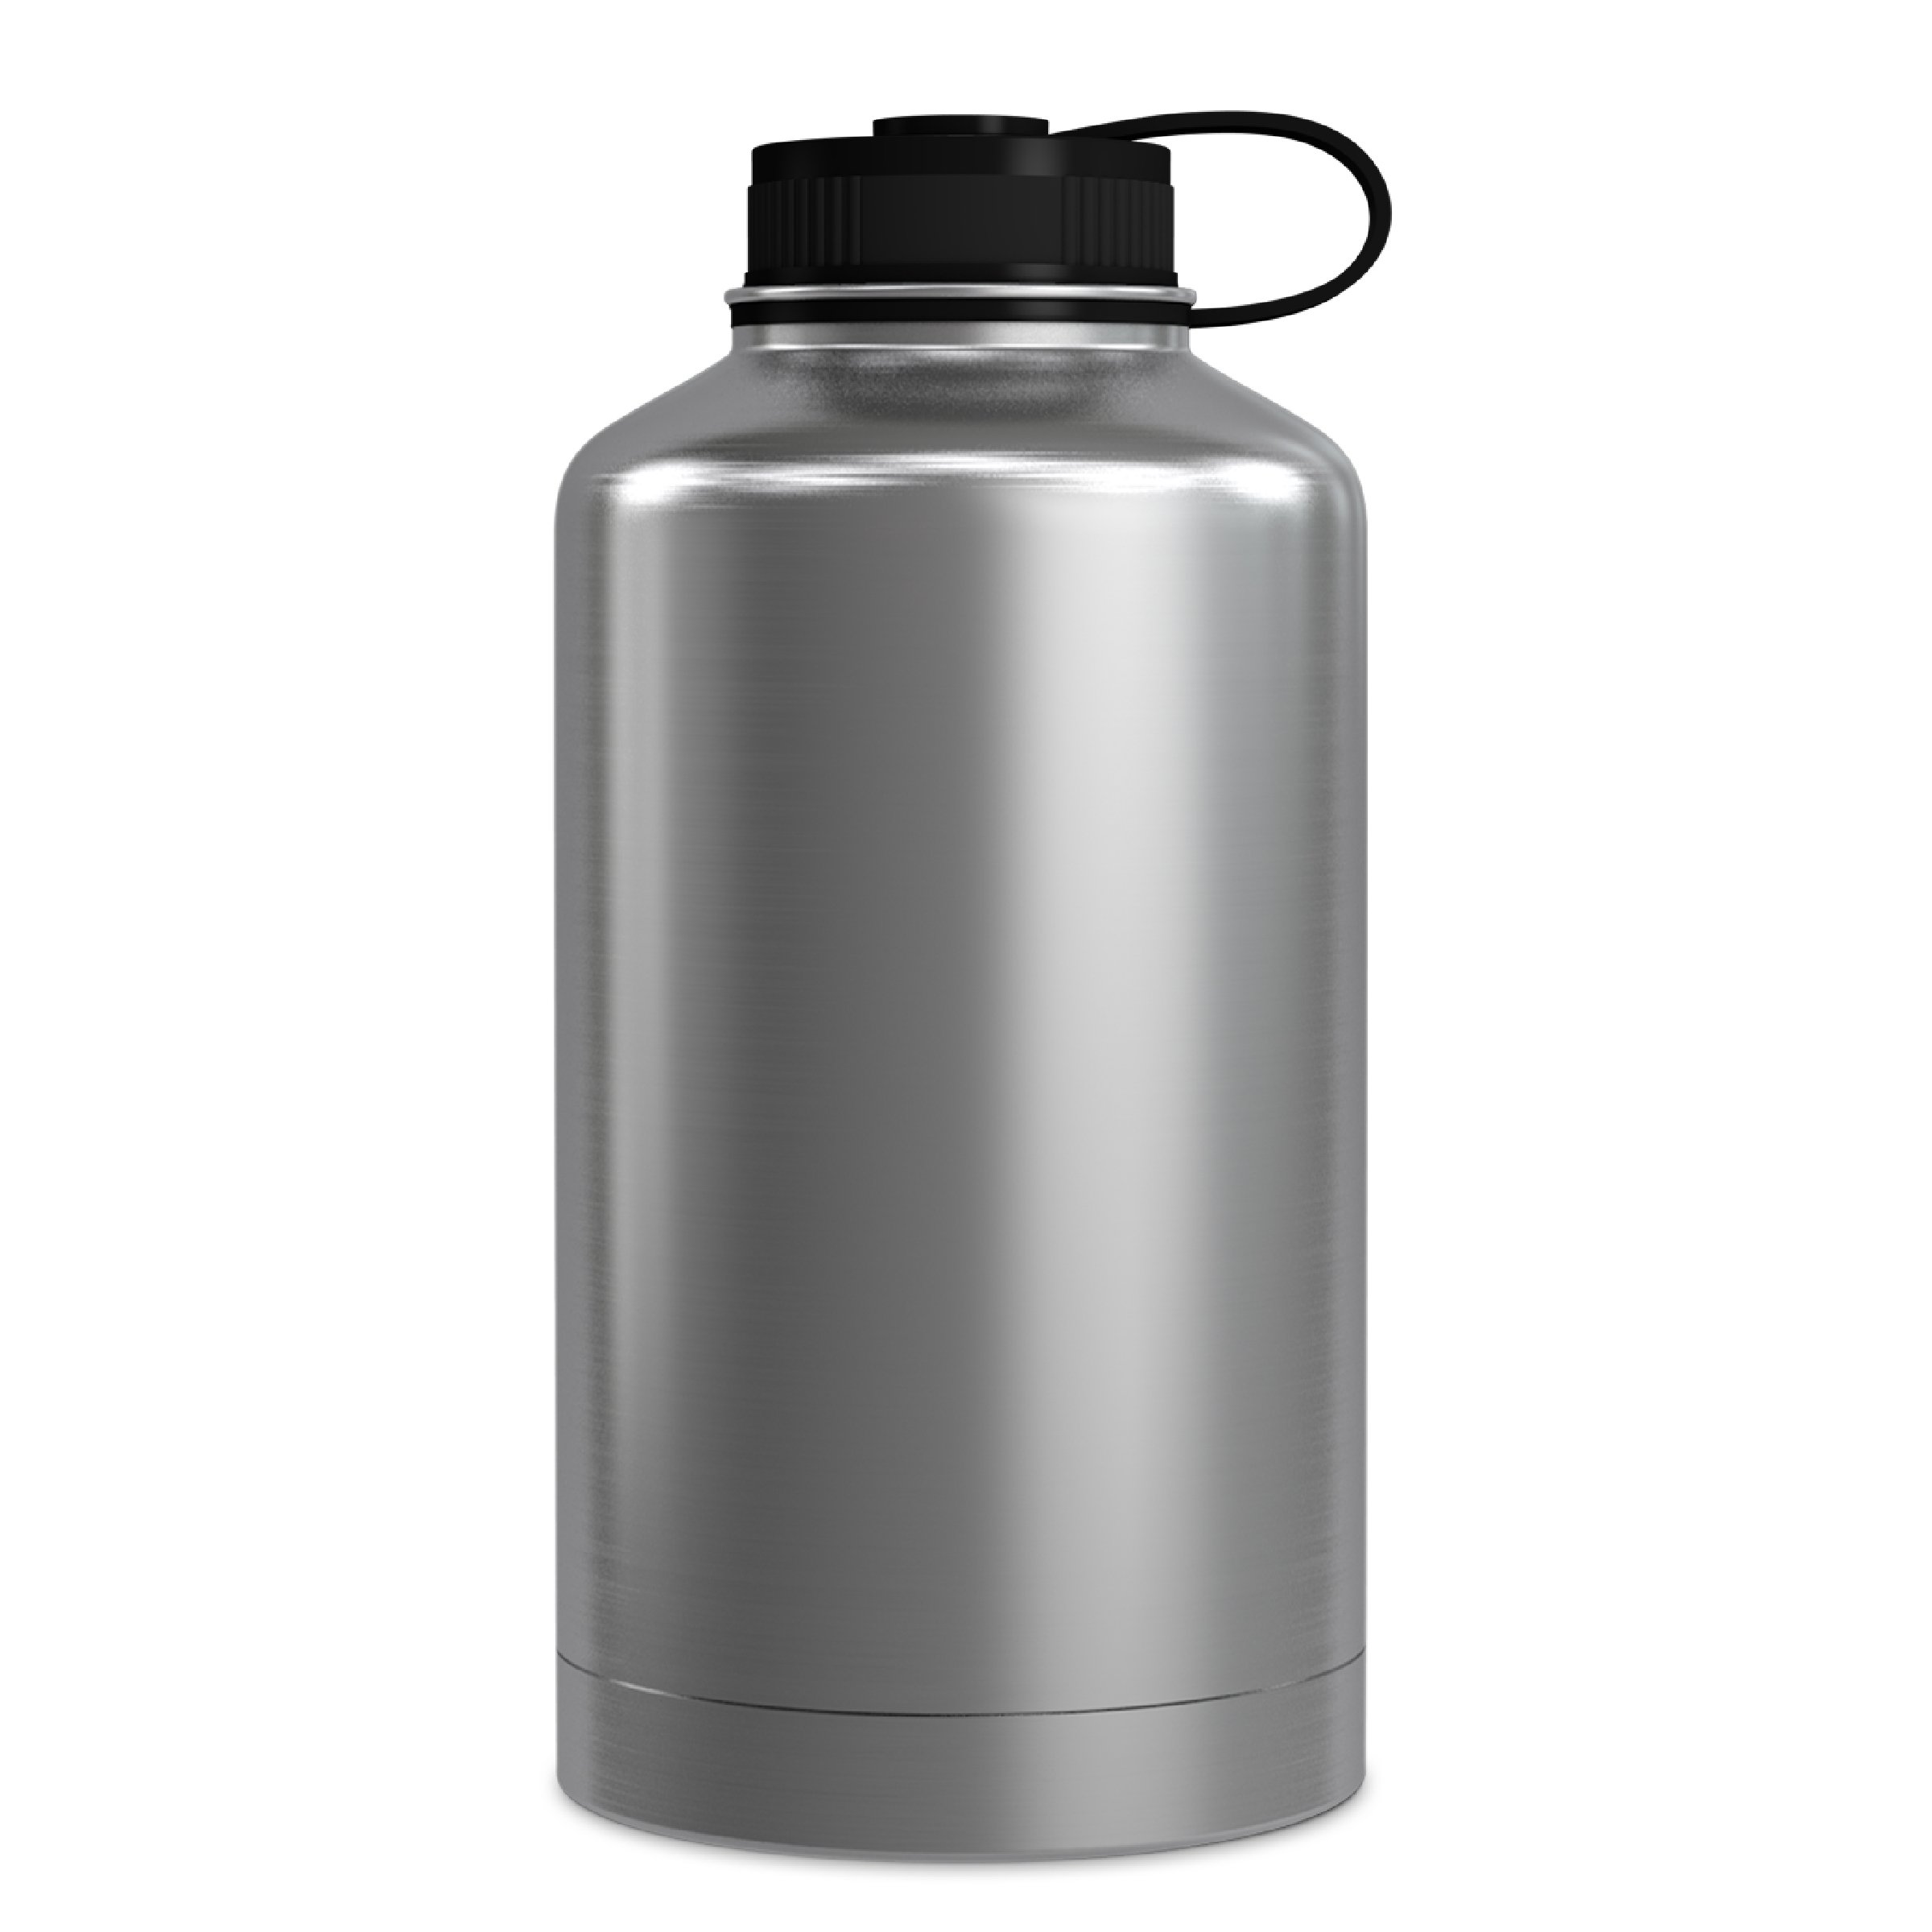 GEO 64oz Double Wall Vacuum Insulated Stainless Steel Leak Proof Sports Water Bottle, Wide Mouth w/BPA Free Screw Cap (Stainless Steel)